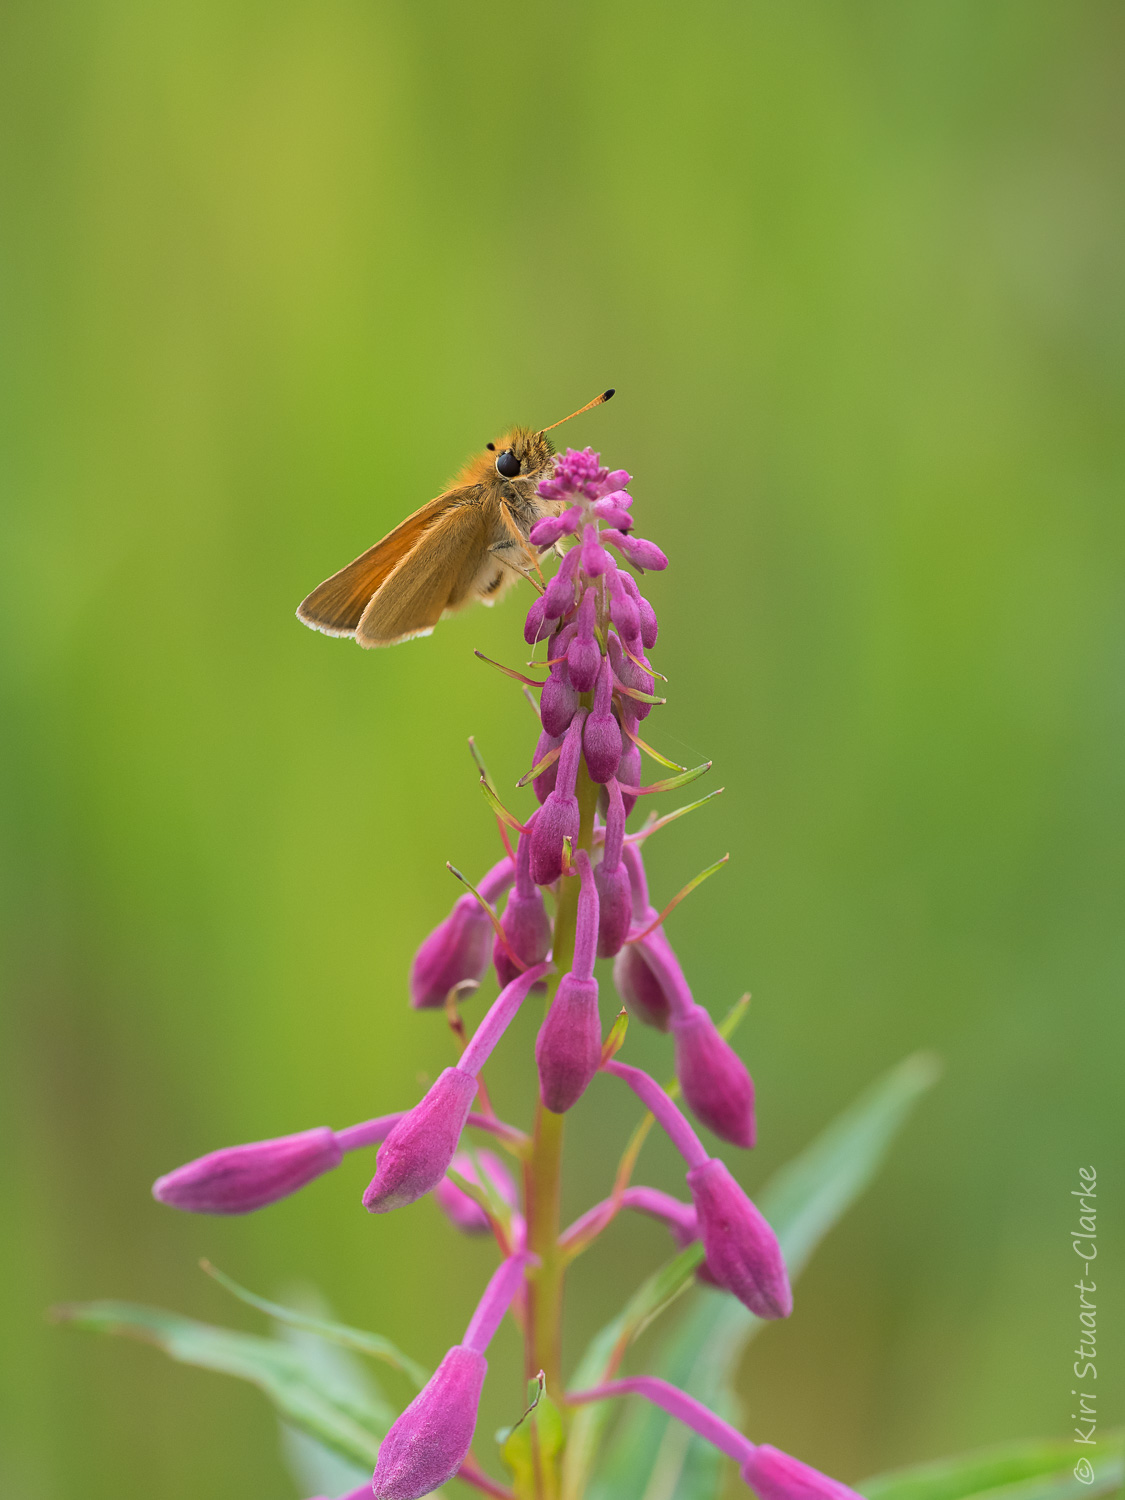 Essex Skipper butterfly perched on a Rosebay Willowherb flower spike